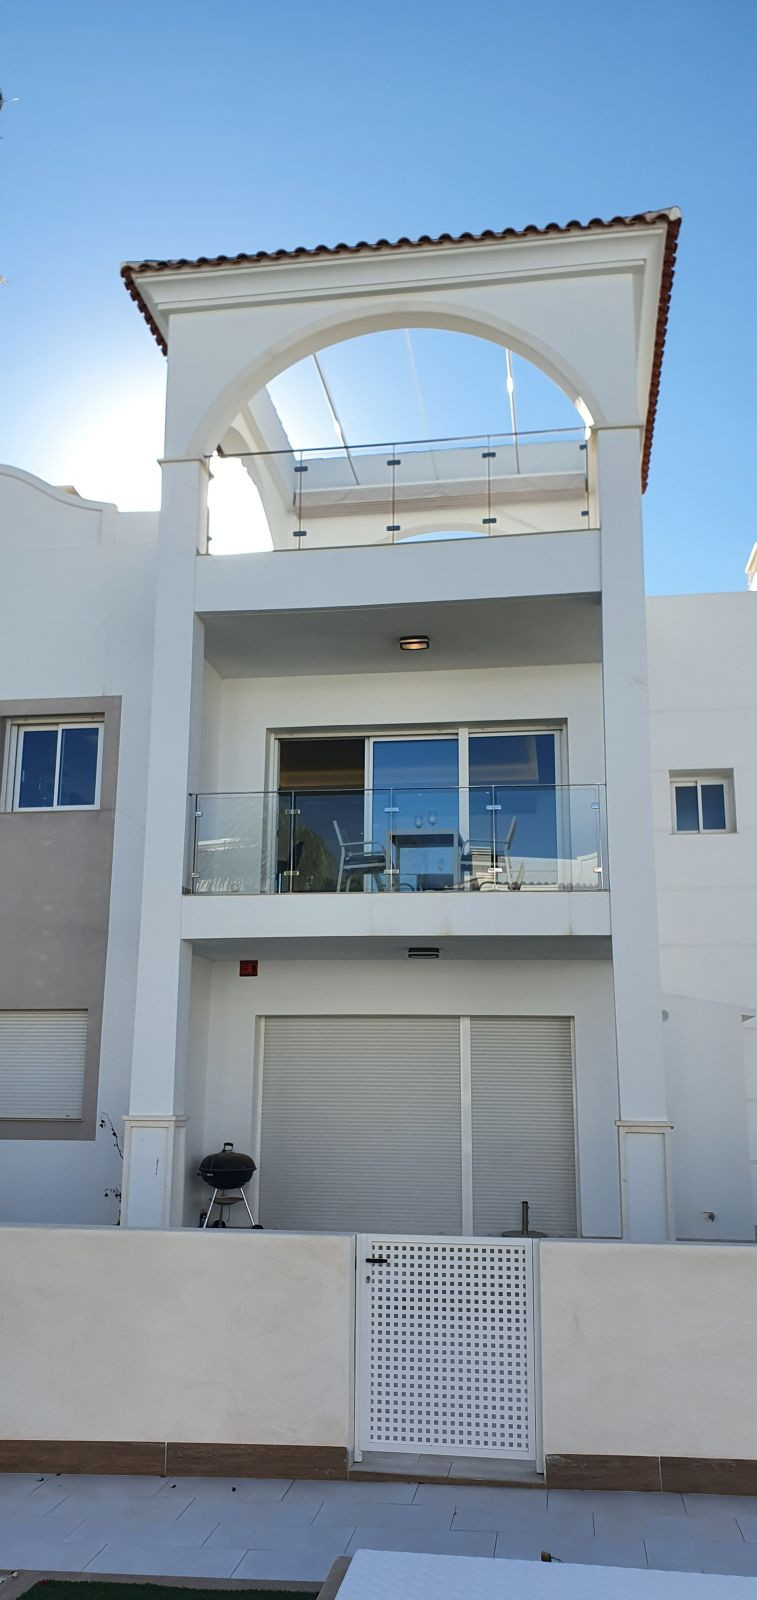 a beautiful duplex apartment with a very nice roof terrace. This is located in beautiful Torrevieja., Spain